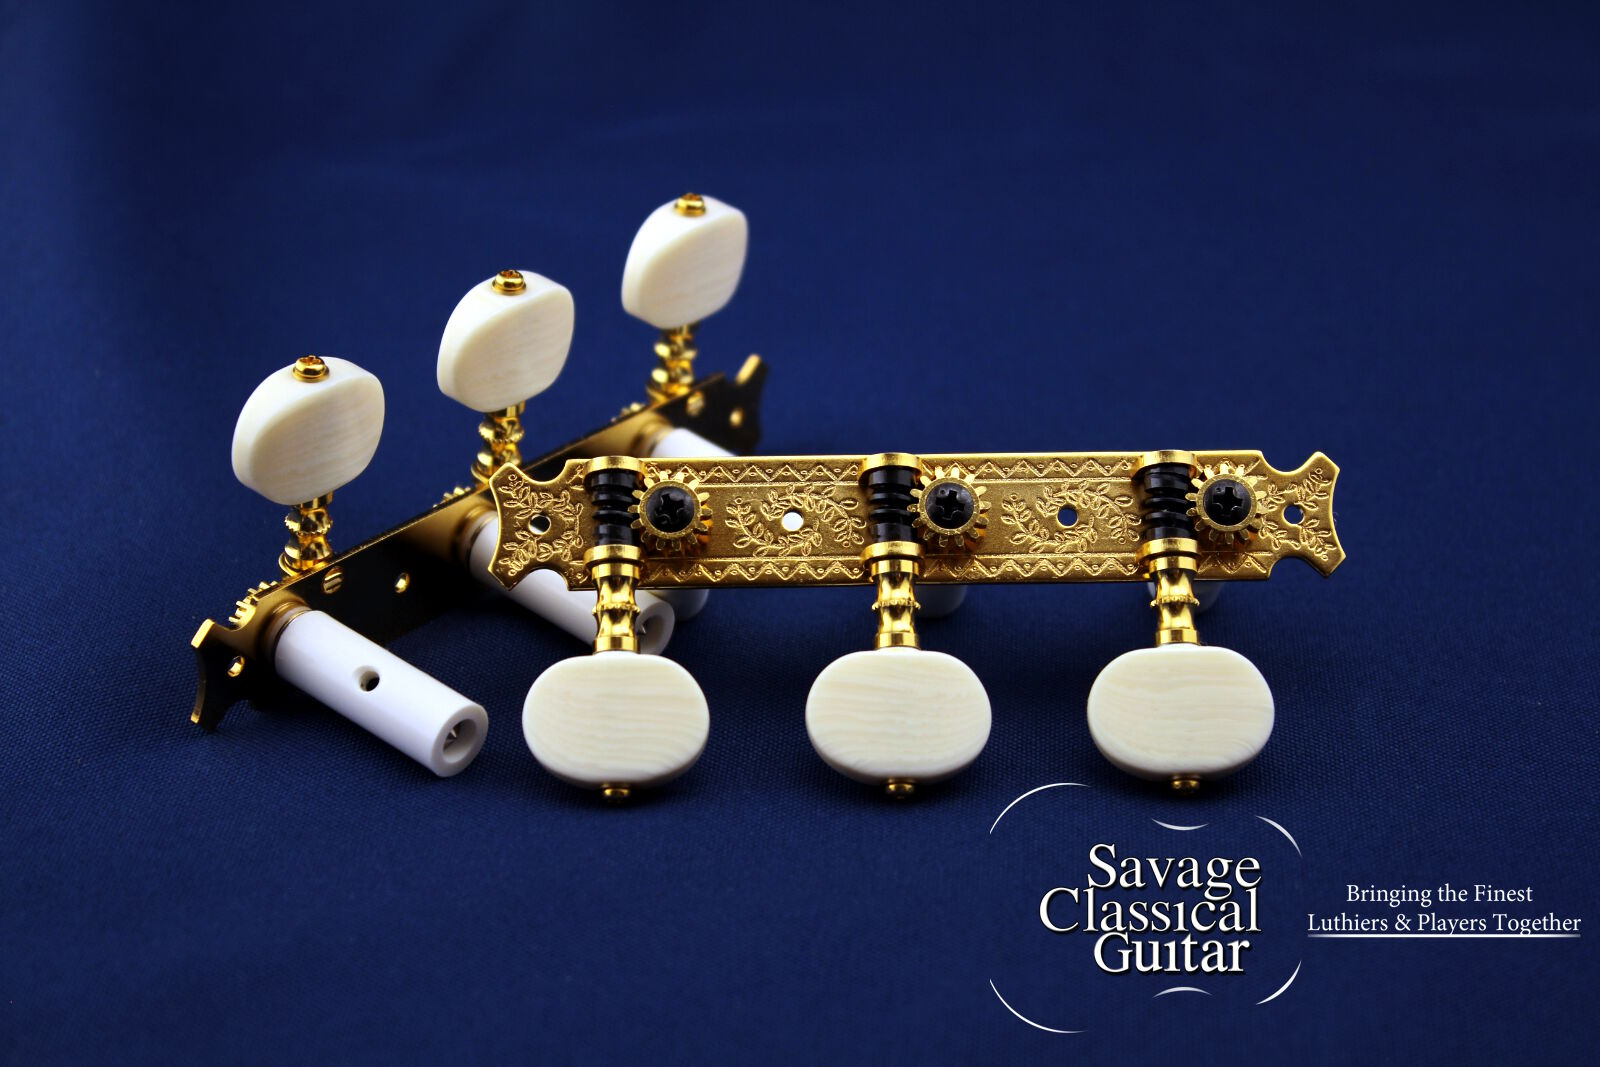 gotoh classical guitar tuning machines for sale savage classical guitar. Black Bedroom Furniture Sets. Home Design Ideas